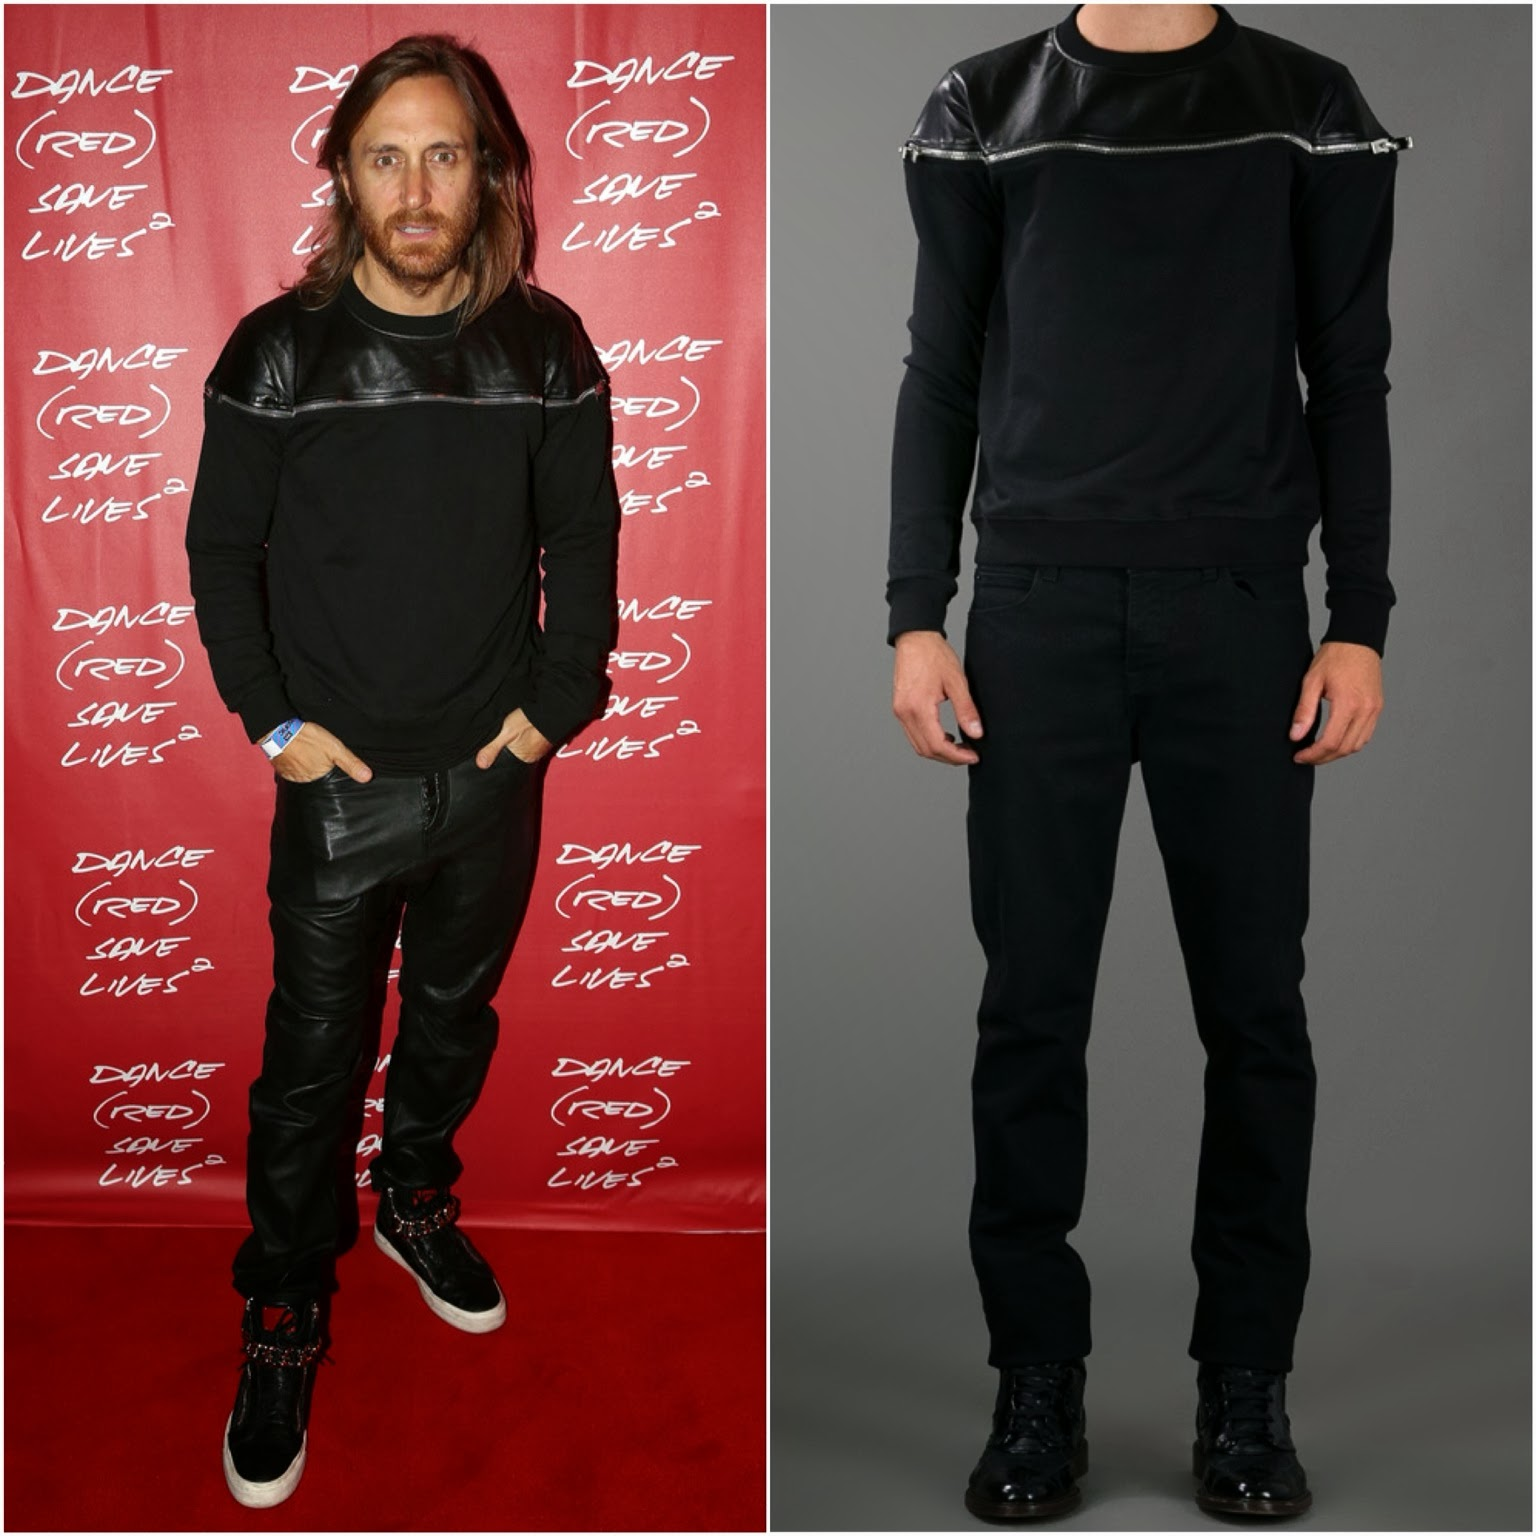 David Guetta in Saint Laurent leather zipped sweatshirt - DANCE (RED) SAVE LIVES, Sydney